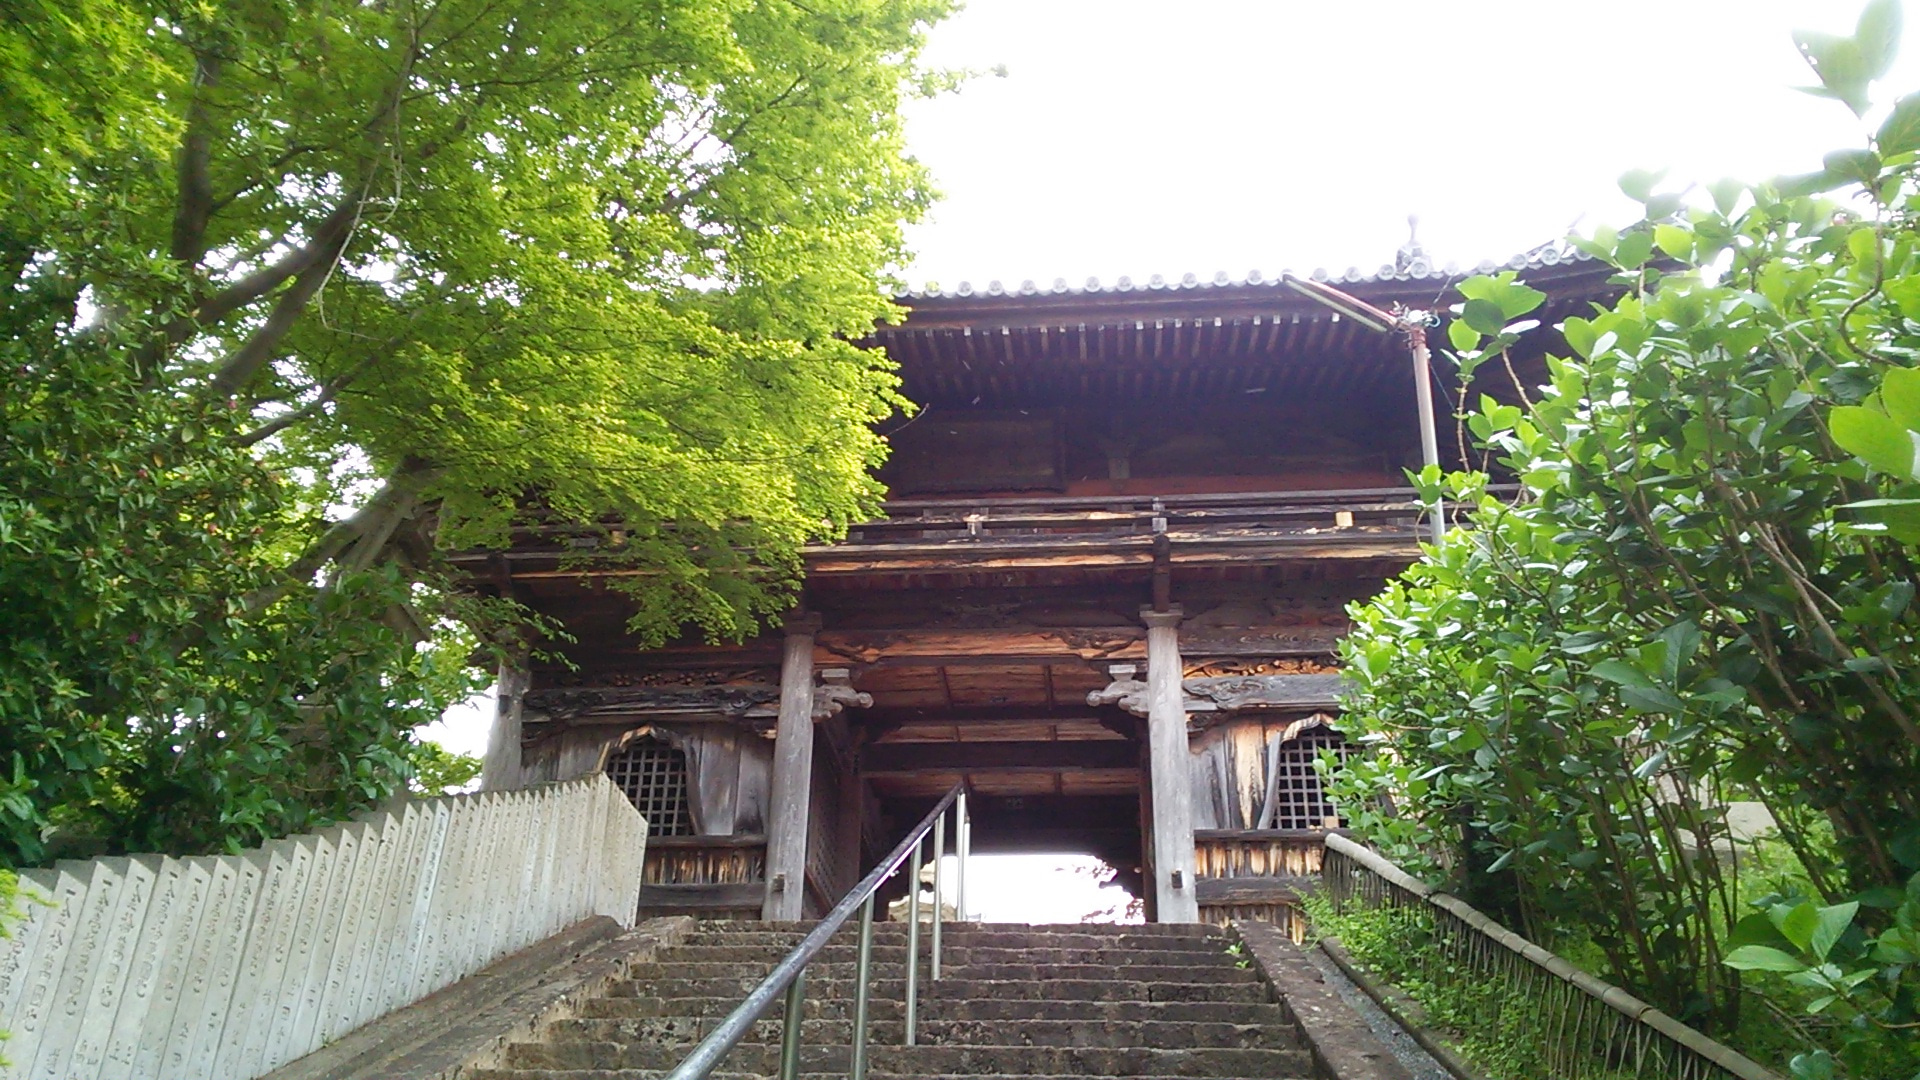 Active jun's blog長慶寺(泉南市)